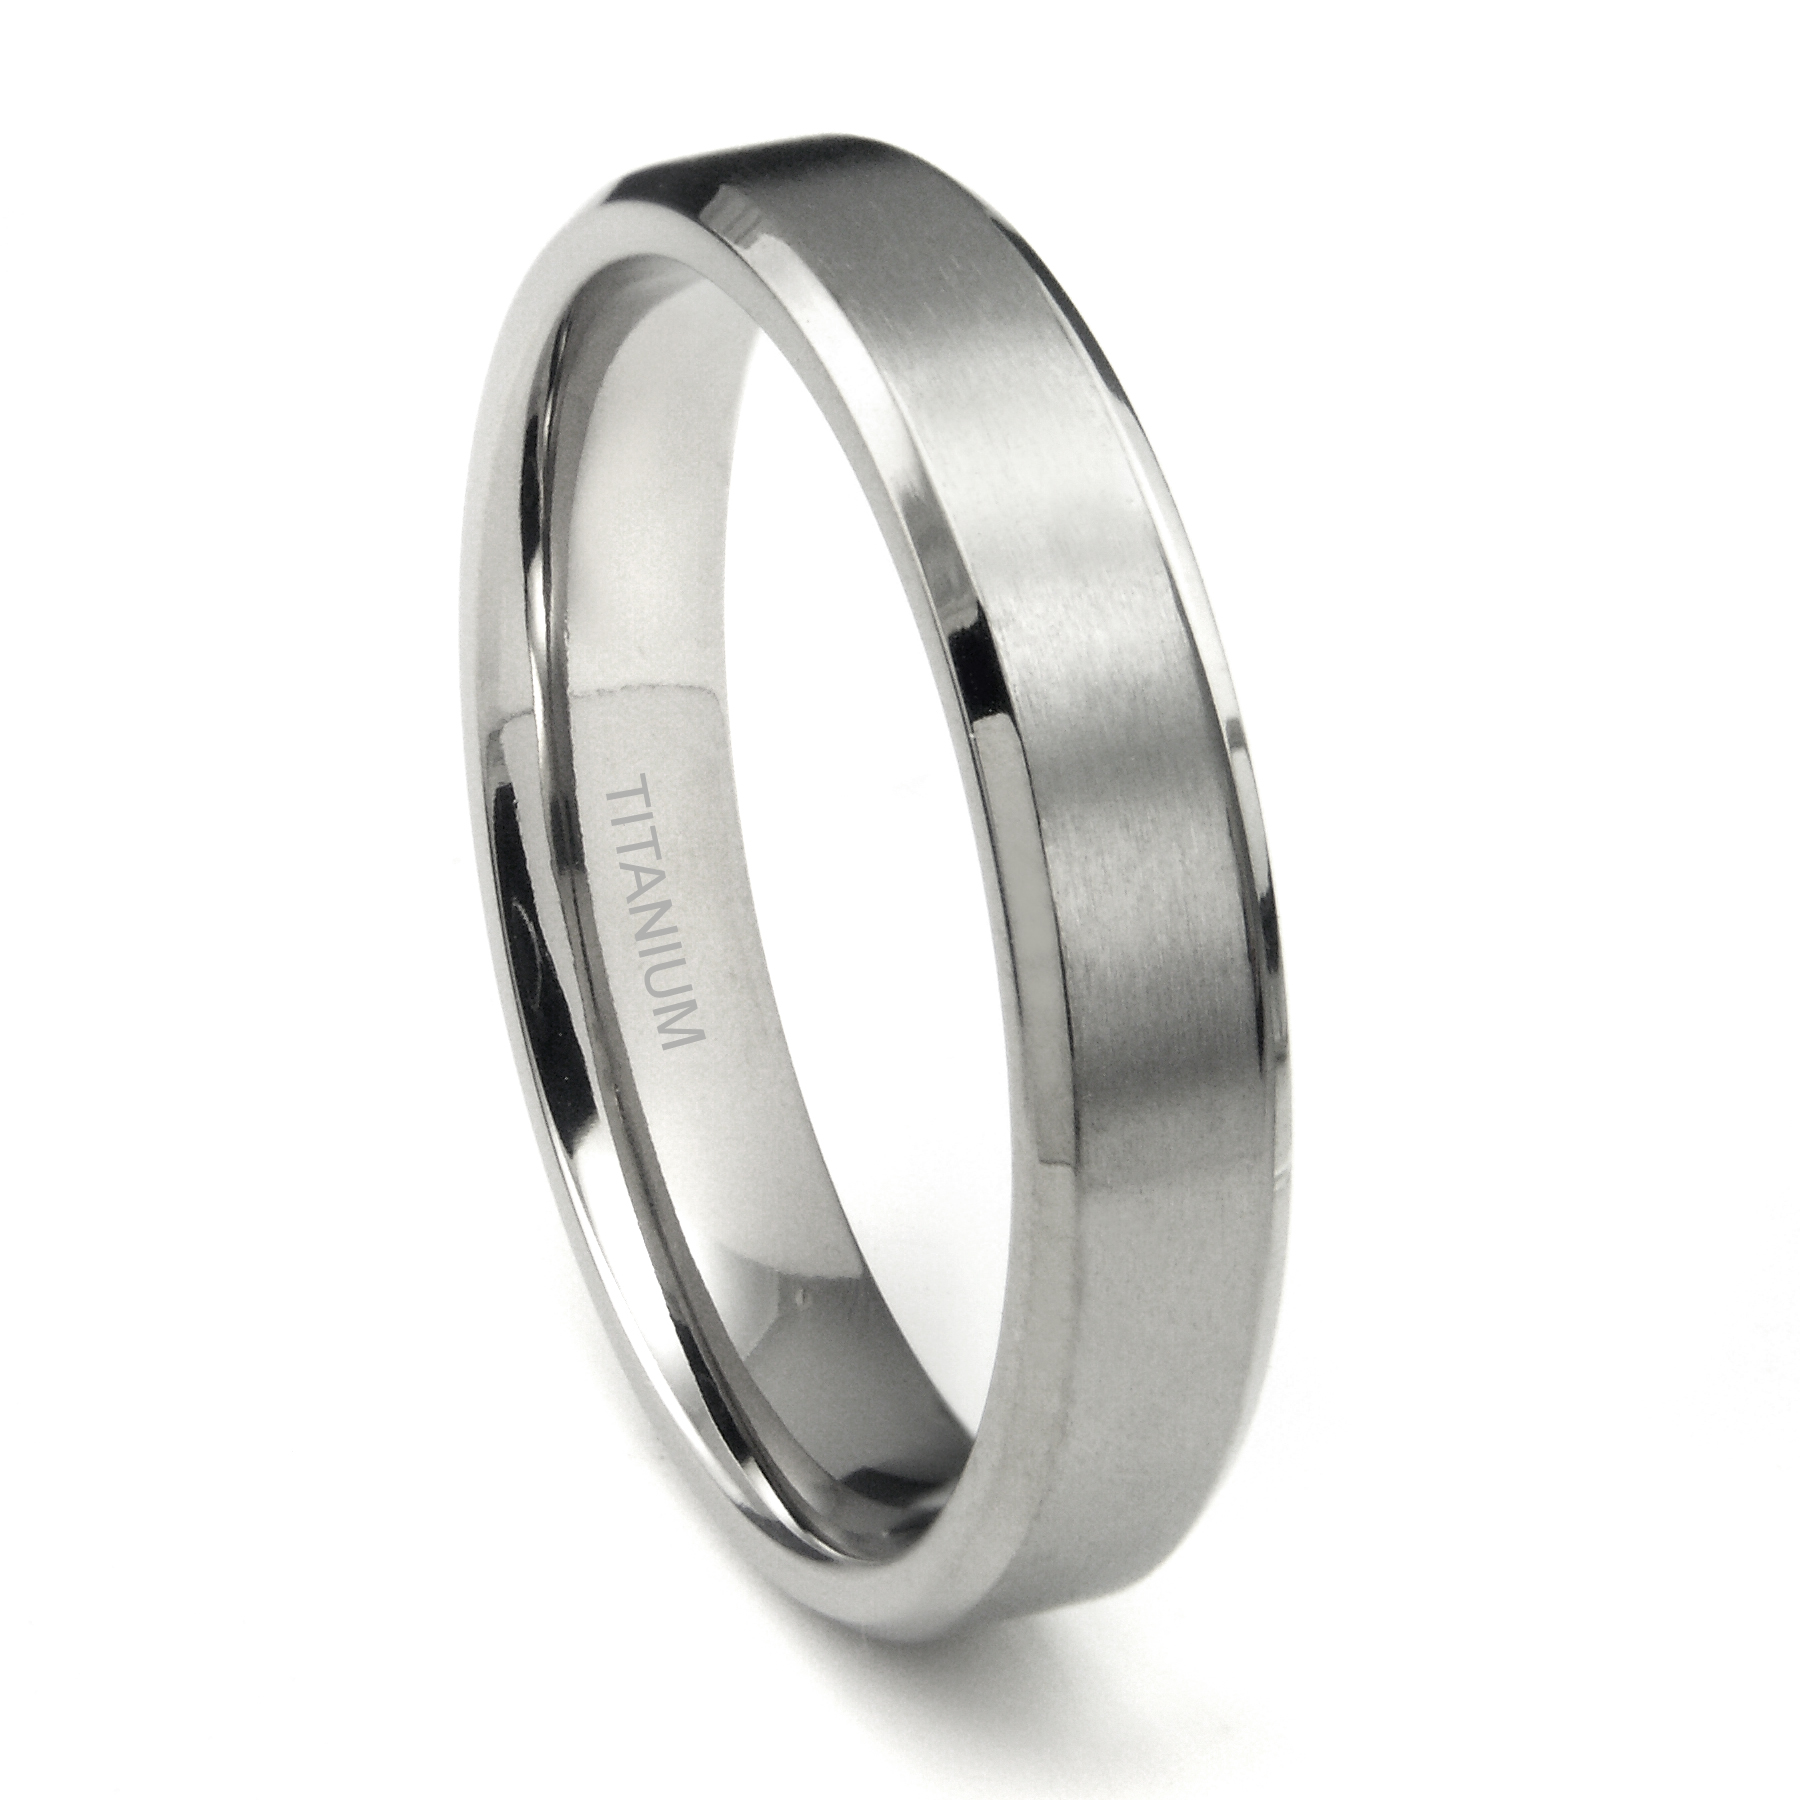 titanum matching products titanium wedding engagement band studio ring rings and set